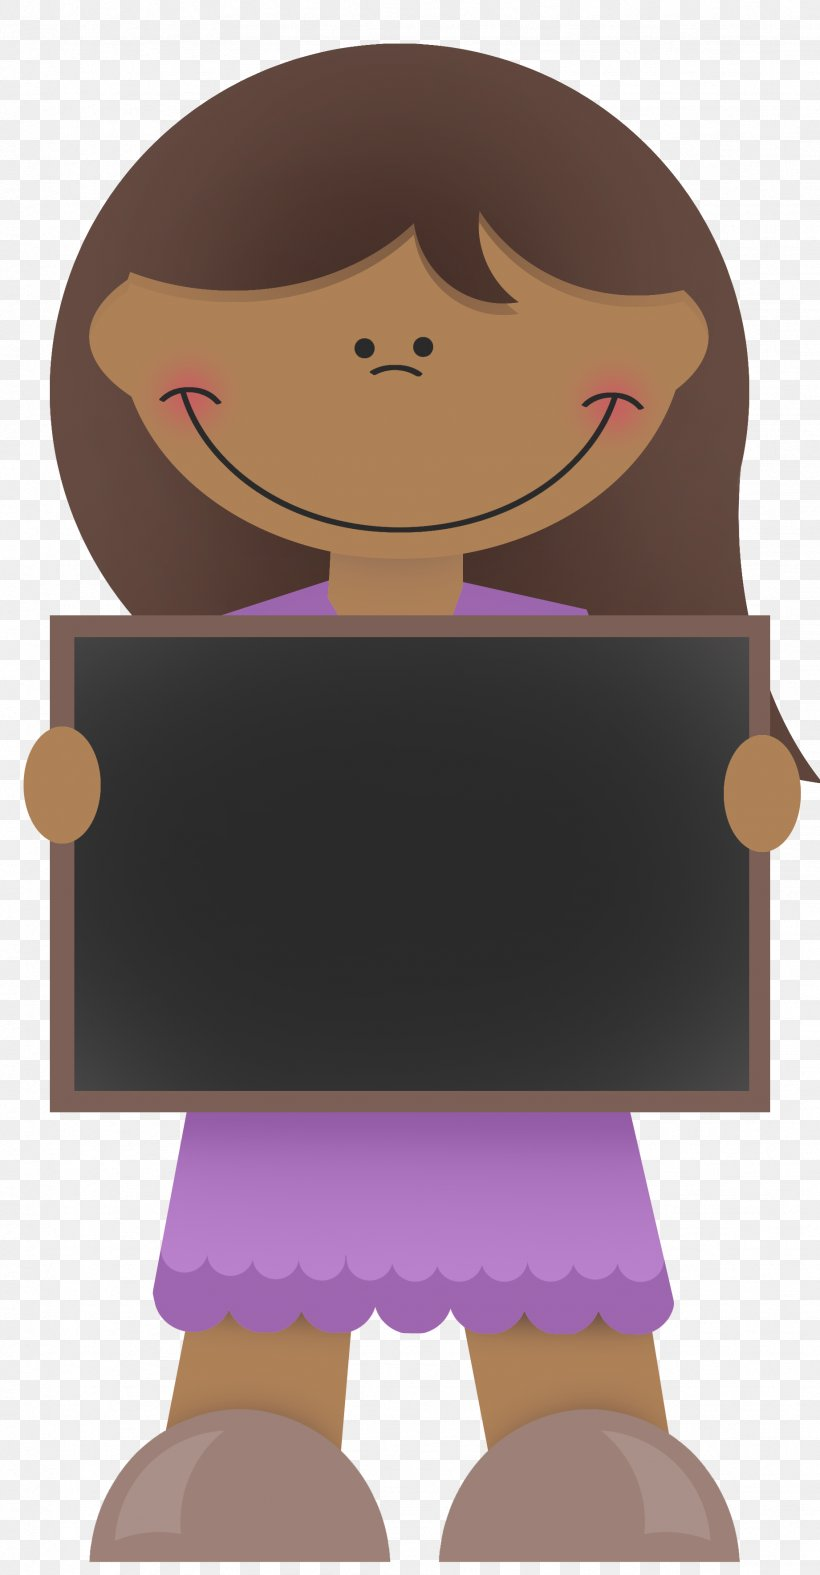 Clip Art Borders And Frames Illustration Vector Graphics Image, PNG, 1842x3540px, Borders And Frames, Blackboard, Cartoon, Drawing, Film Download Free